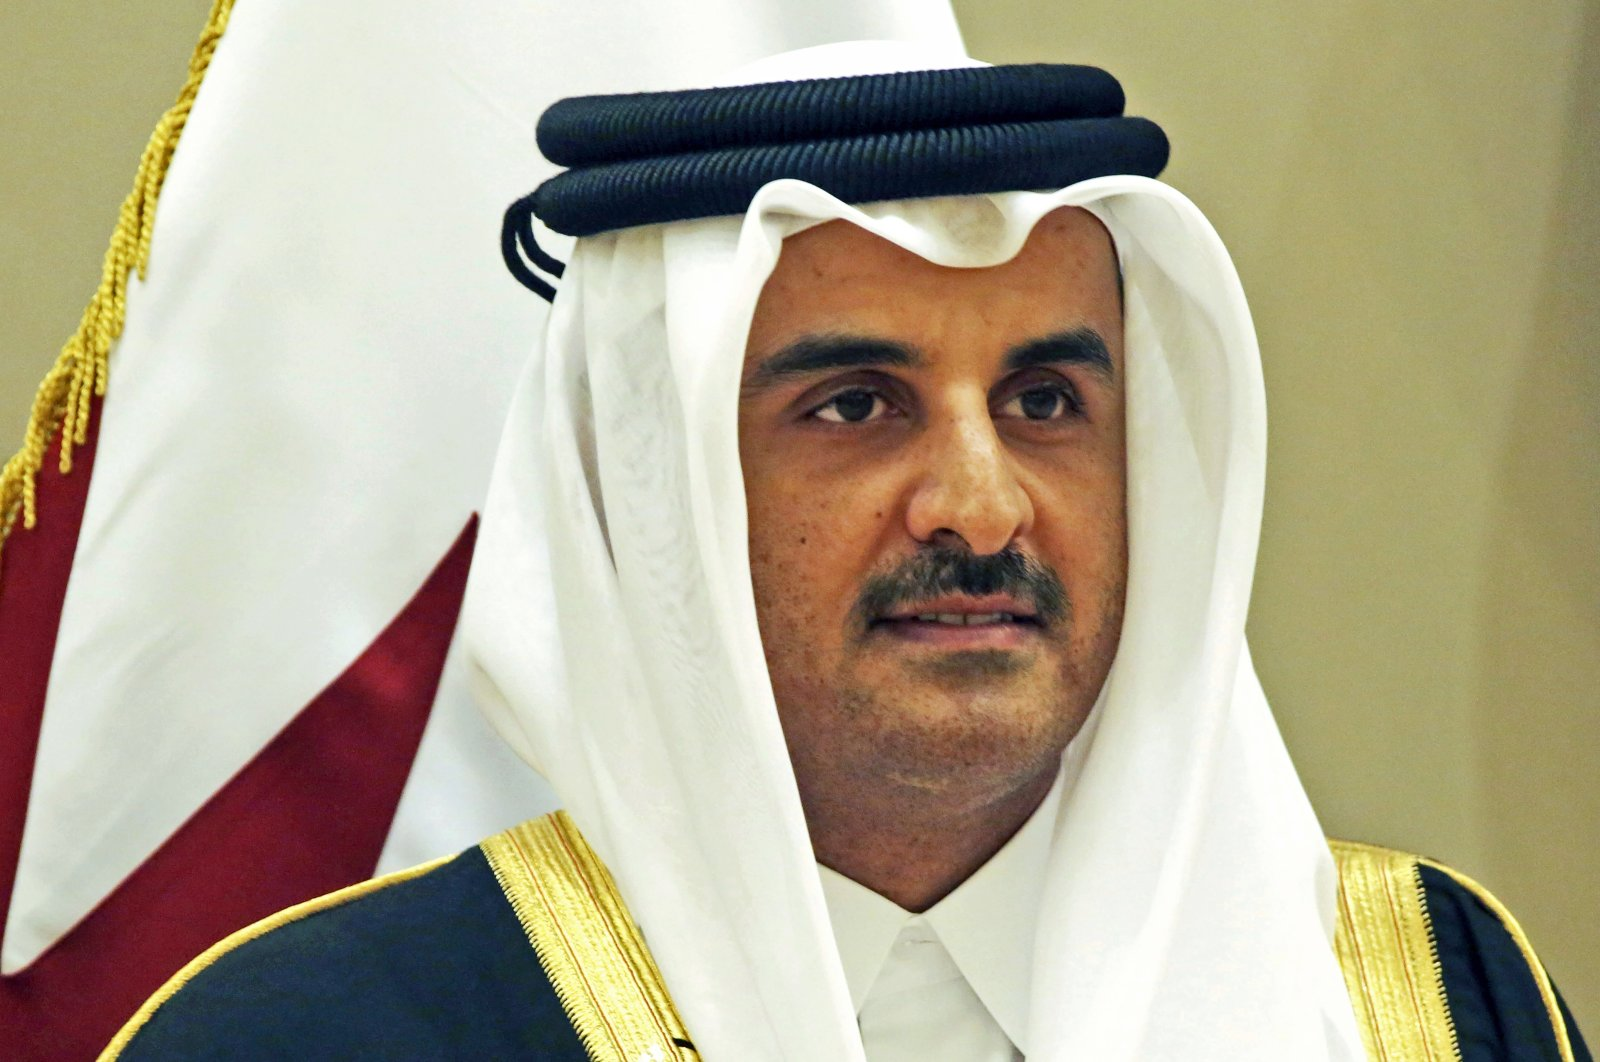 Qatar's emir, Sheikh Tamim bin Hamad Al Thani, poses for a group photo at the Gulf Cooperation Council summit in Kuwait, Dec. 5, 2017. (AP Photo)